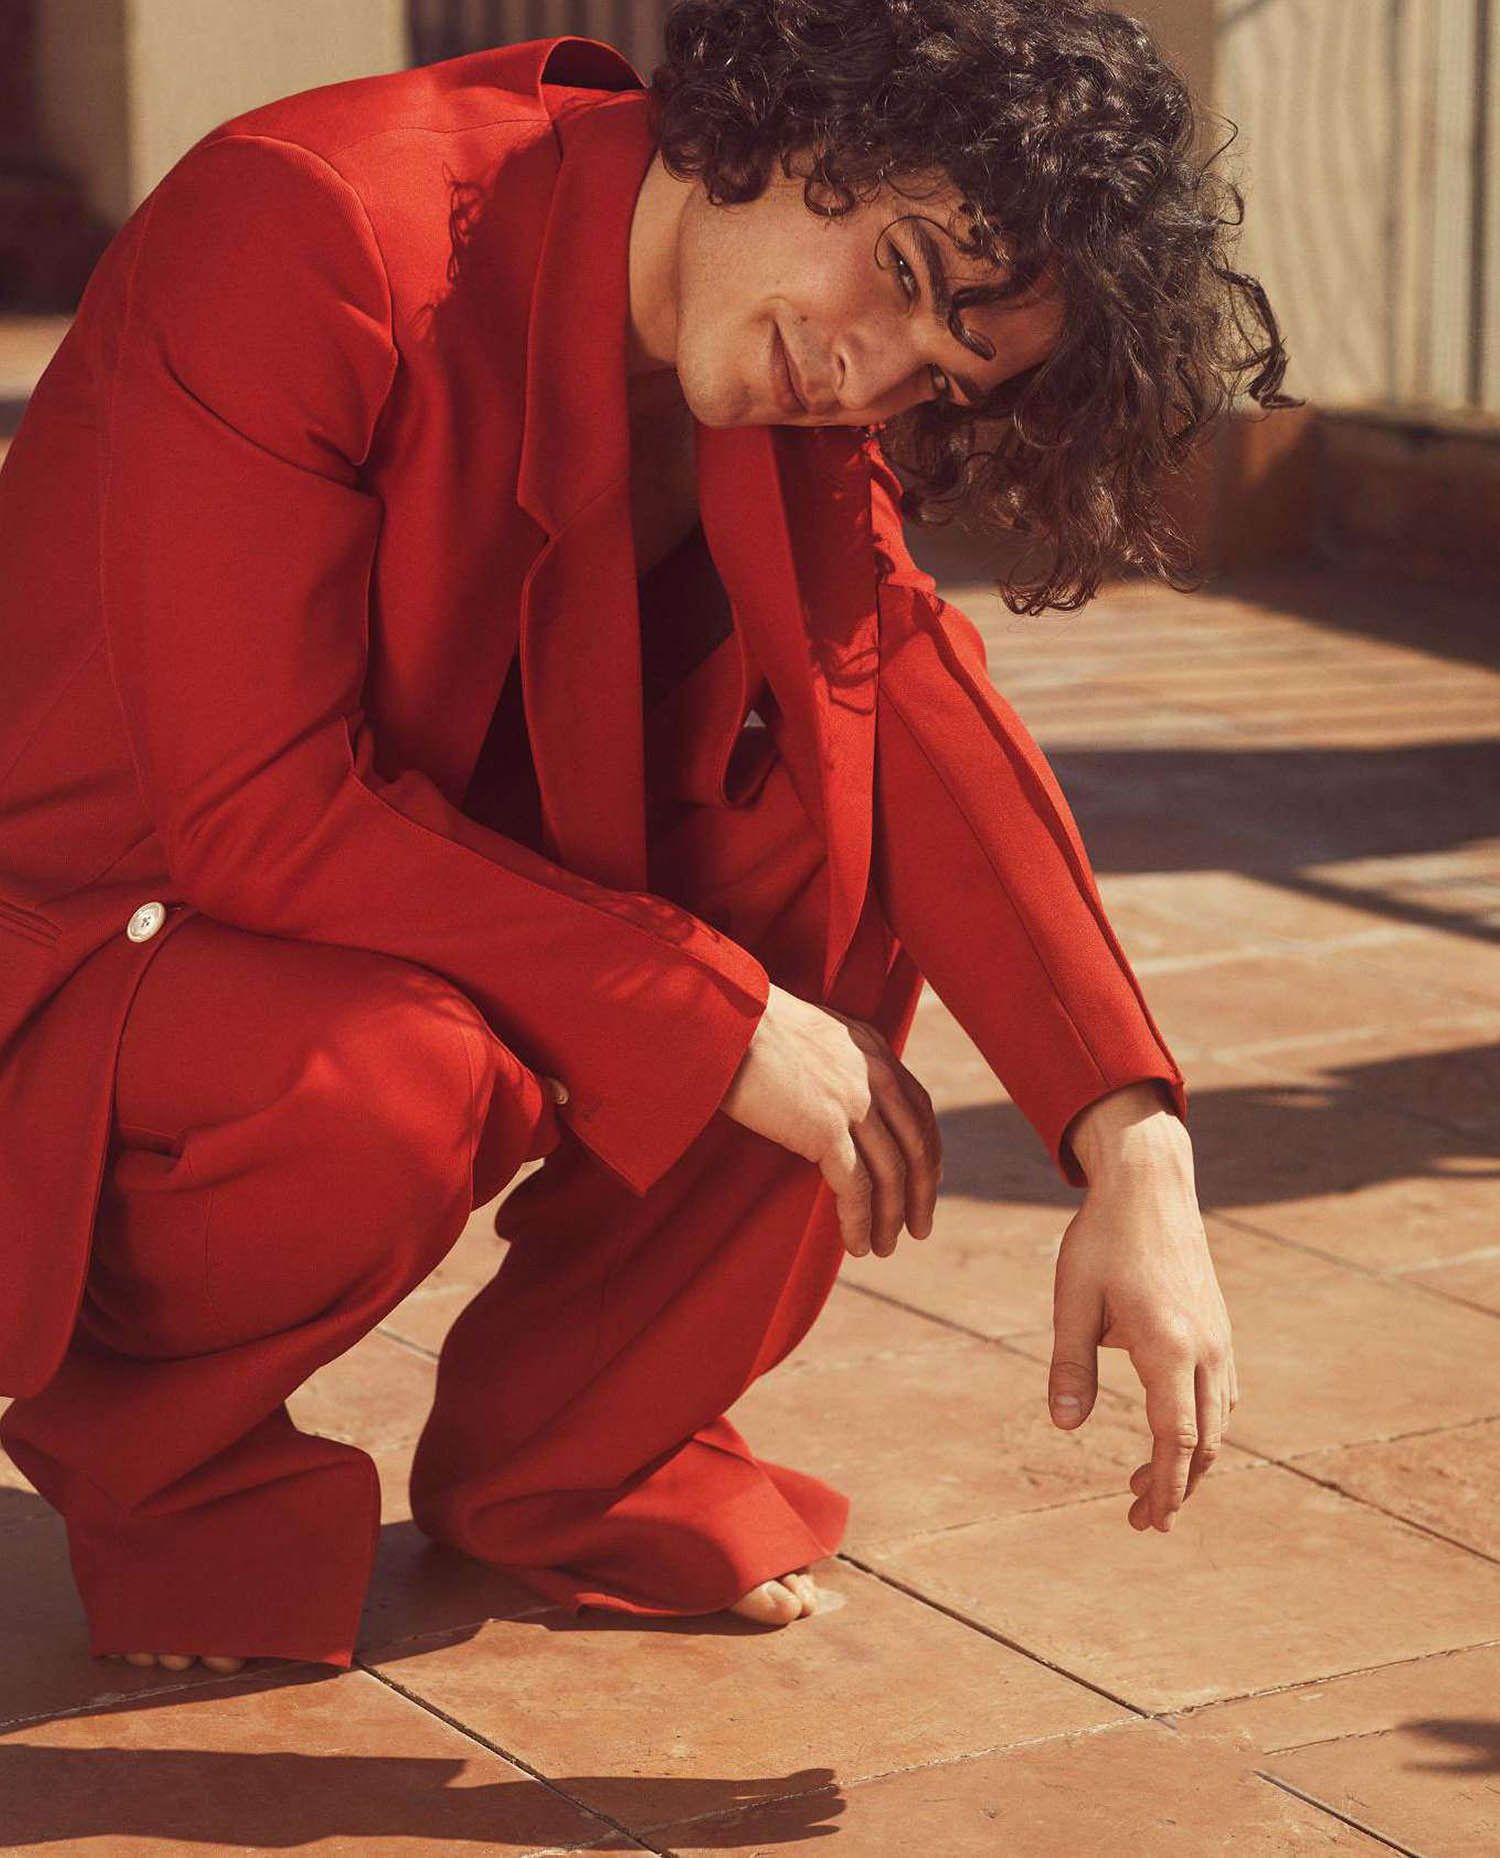 Leo Gassmann by Laura Sciacovelli for Icon Italia Issue 65